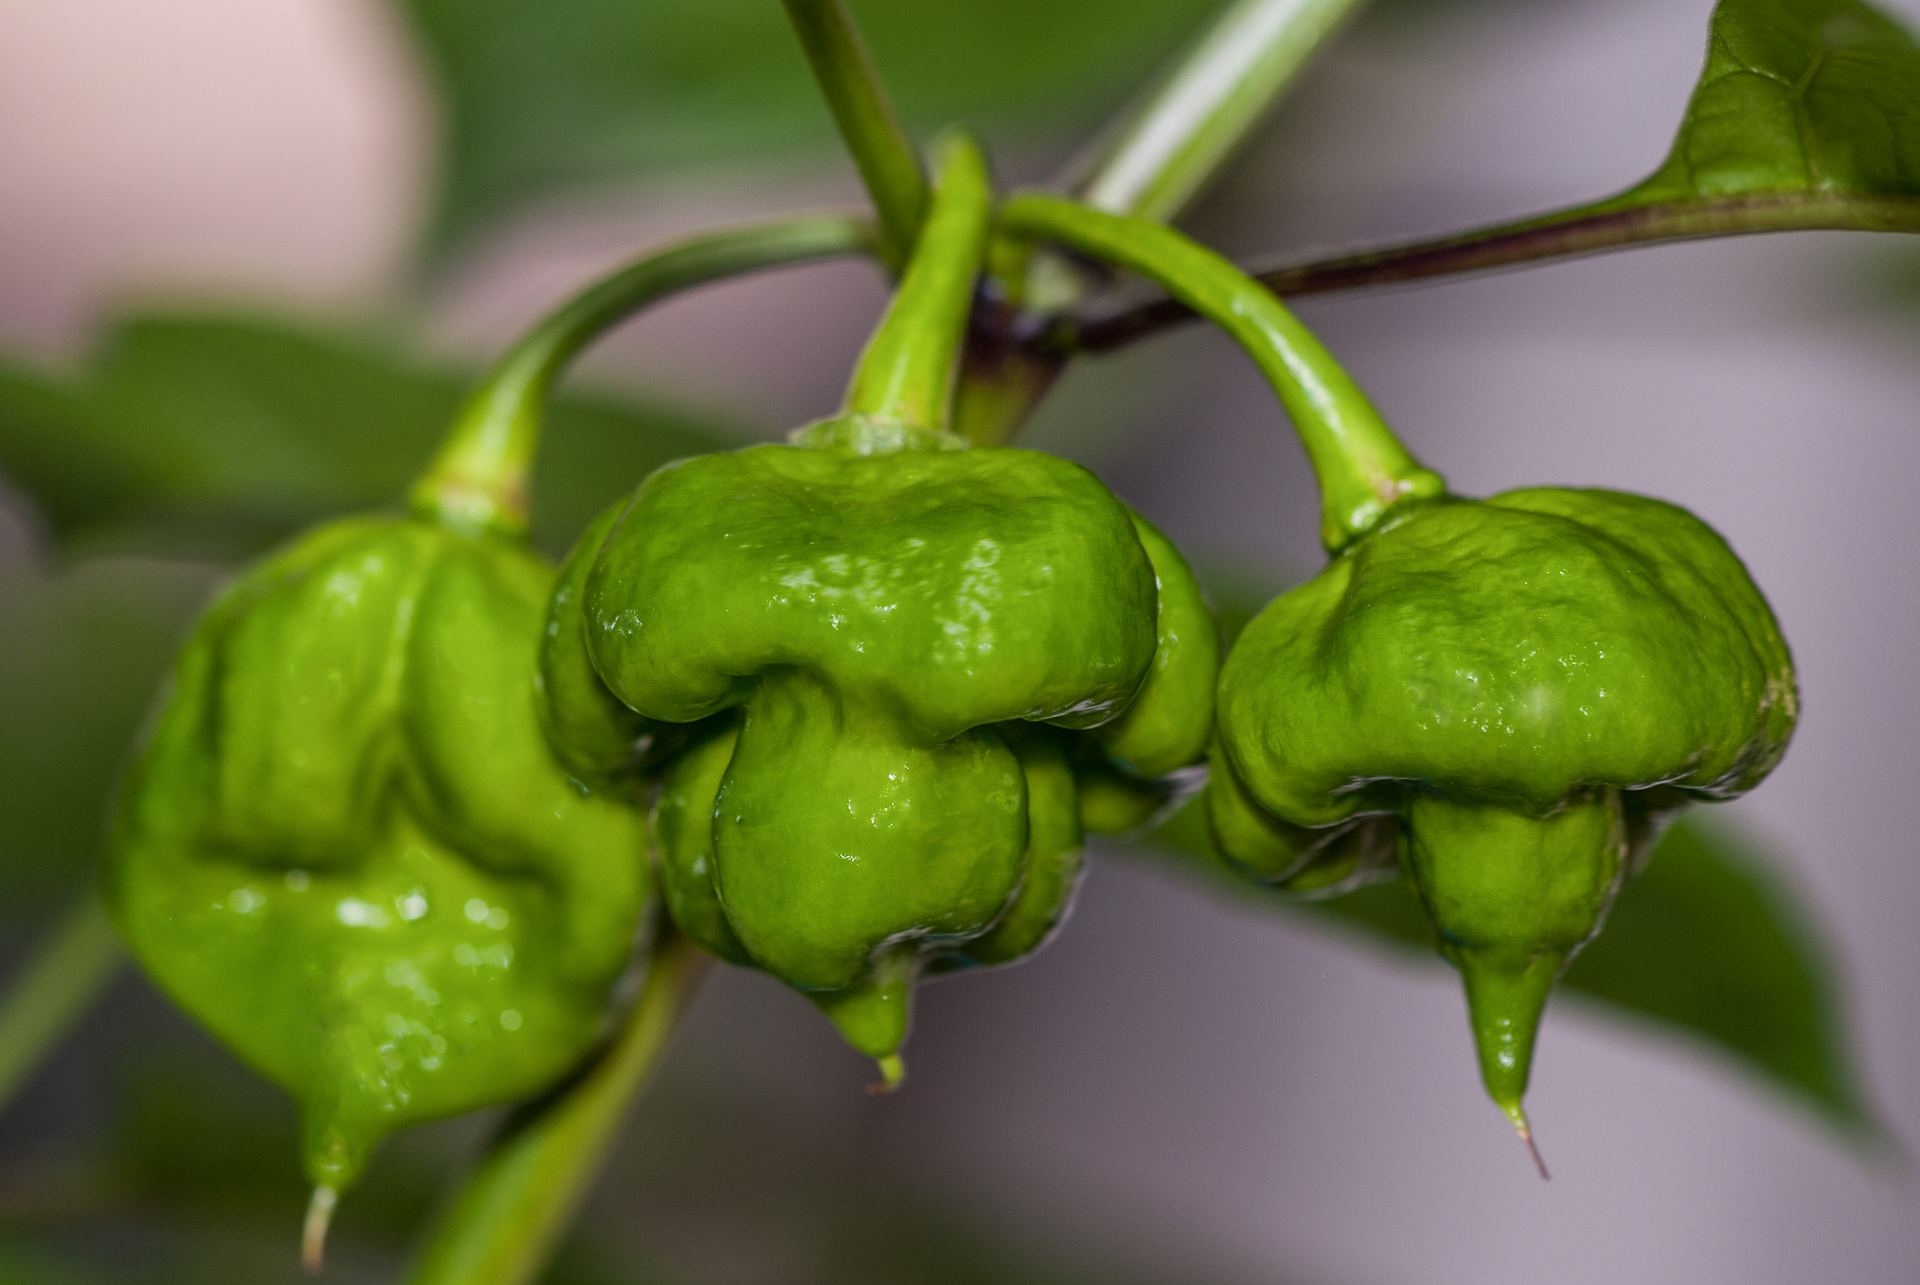 PI 640817 - Capsicum annuum - Chilisorte